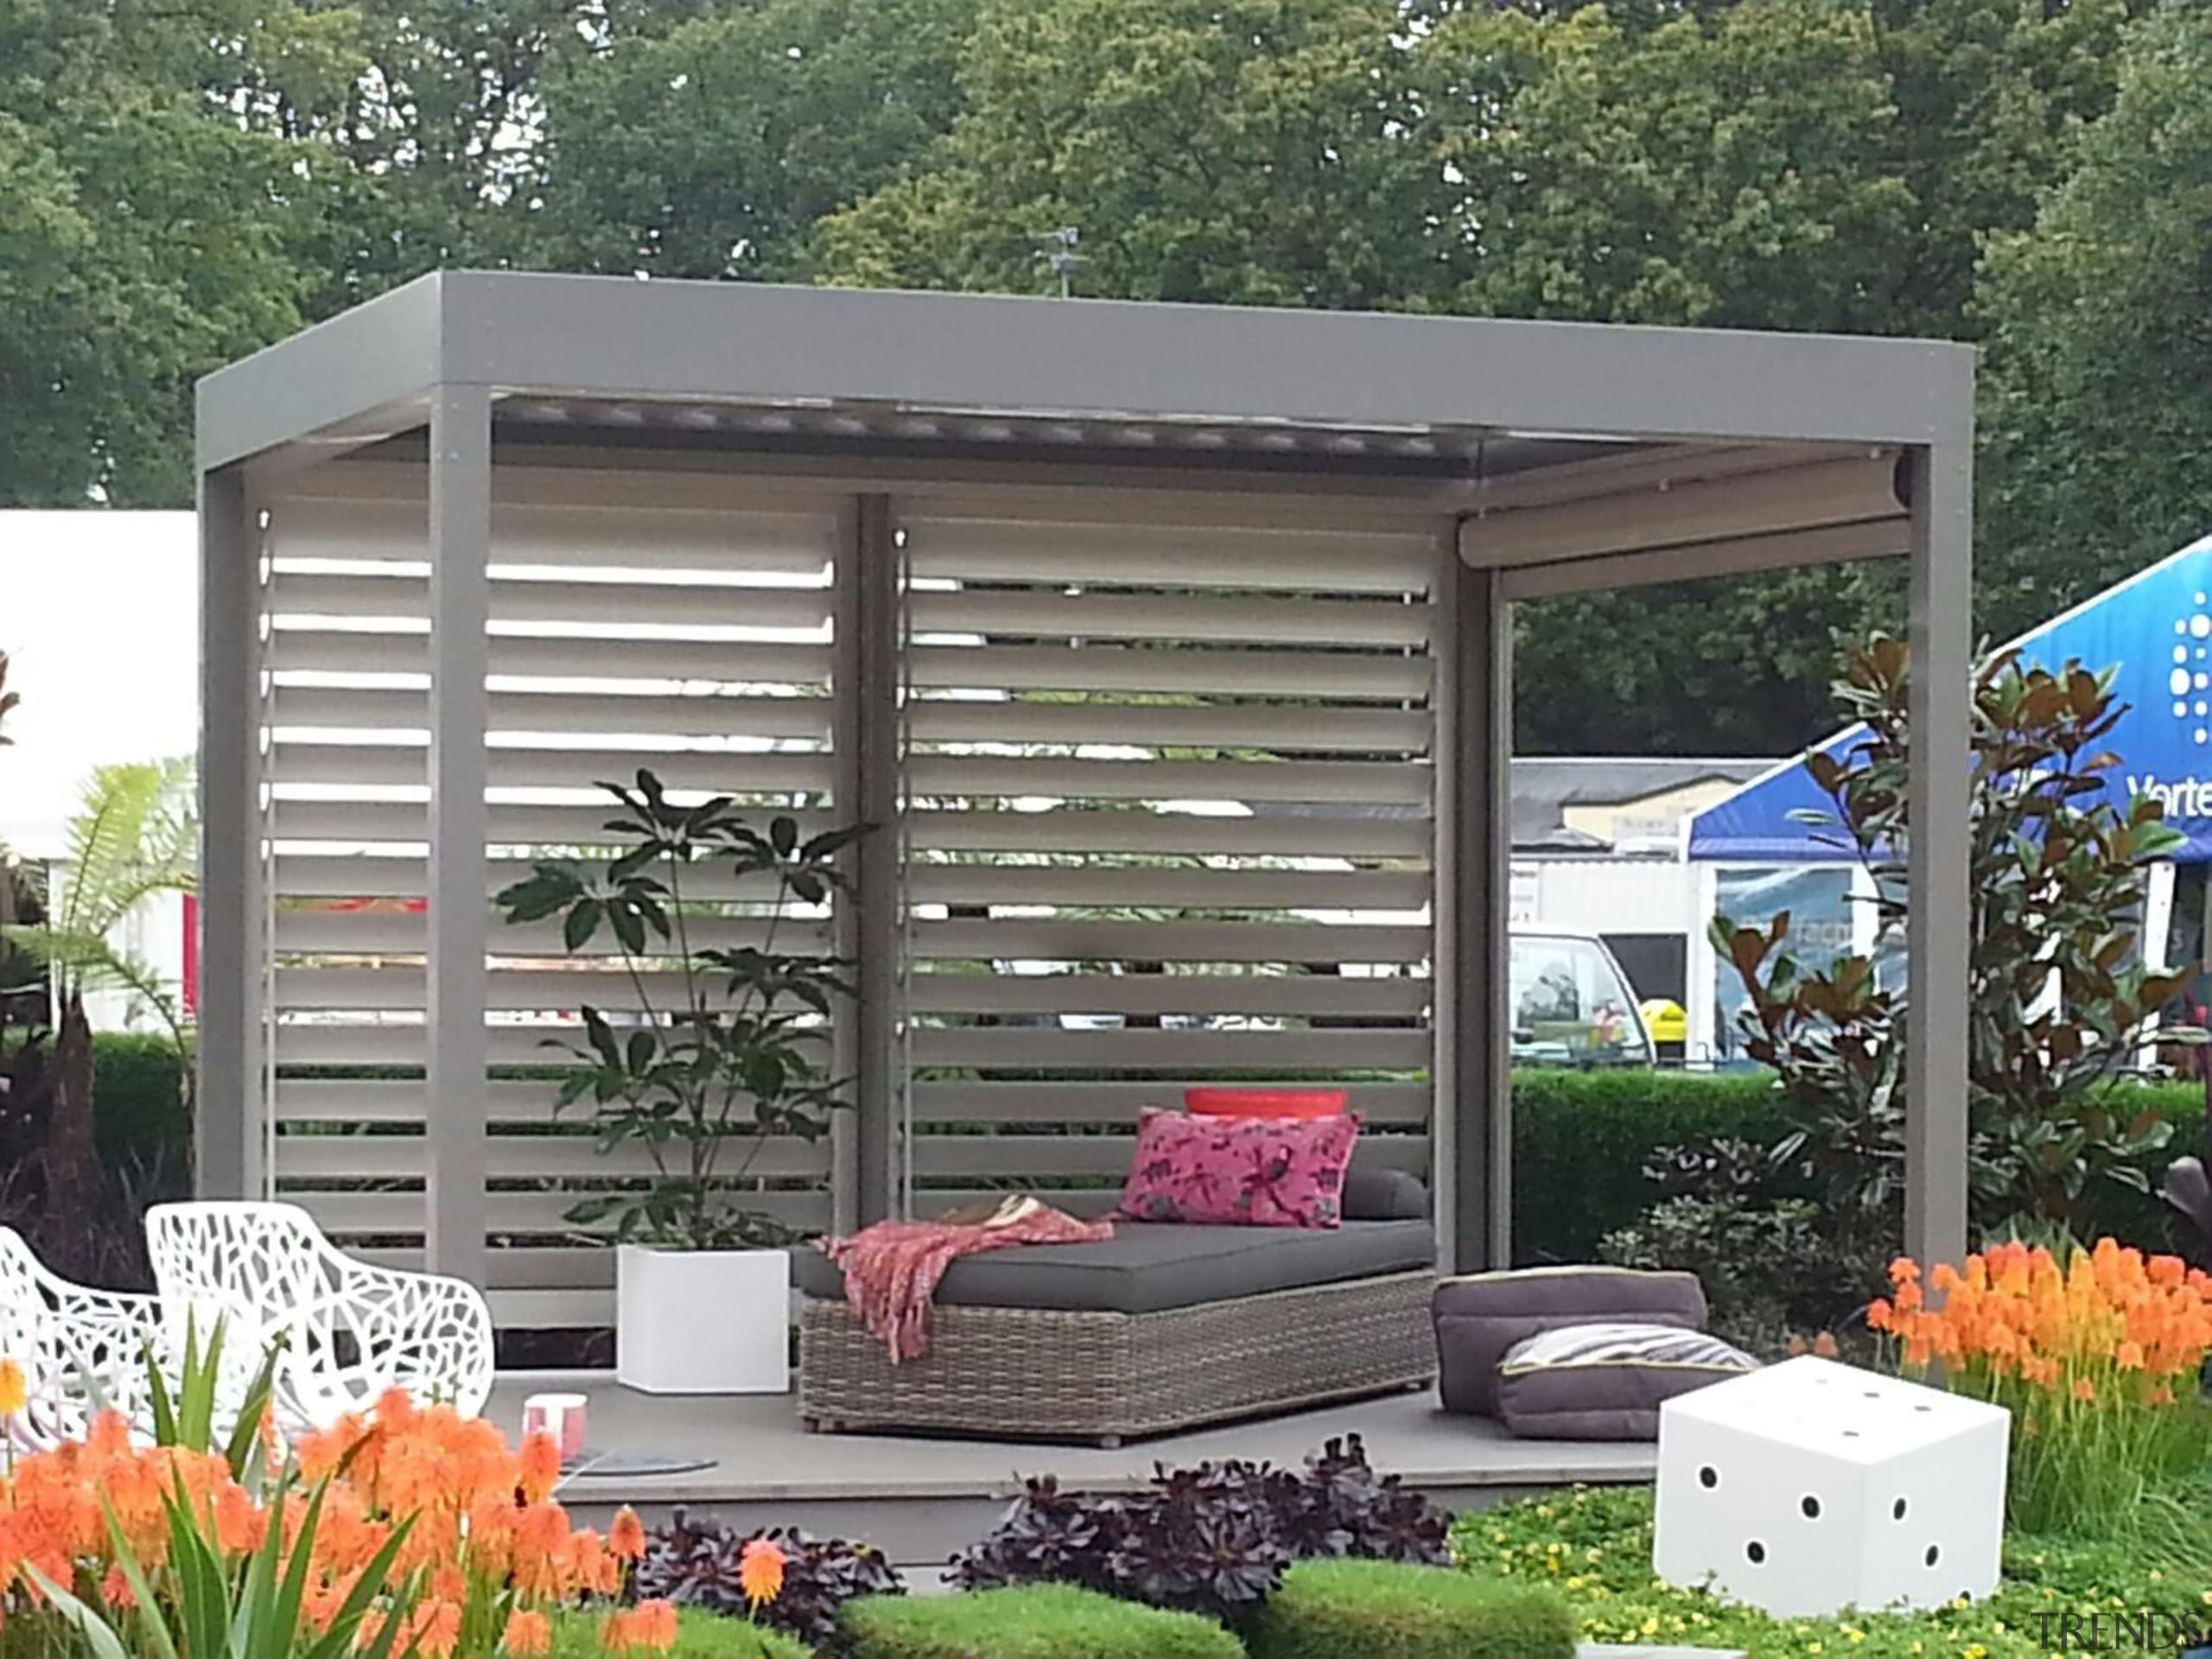 The Louvretec stand at the Ellerslie Flower Show backyard, canopy, outdoor structure, shade, shed, gray